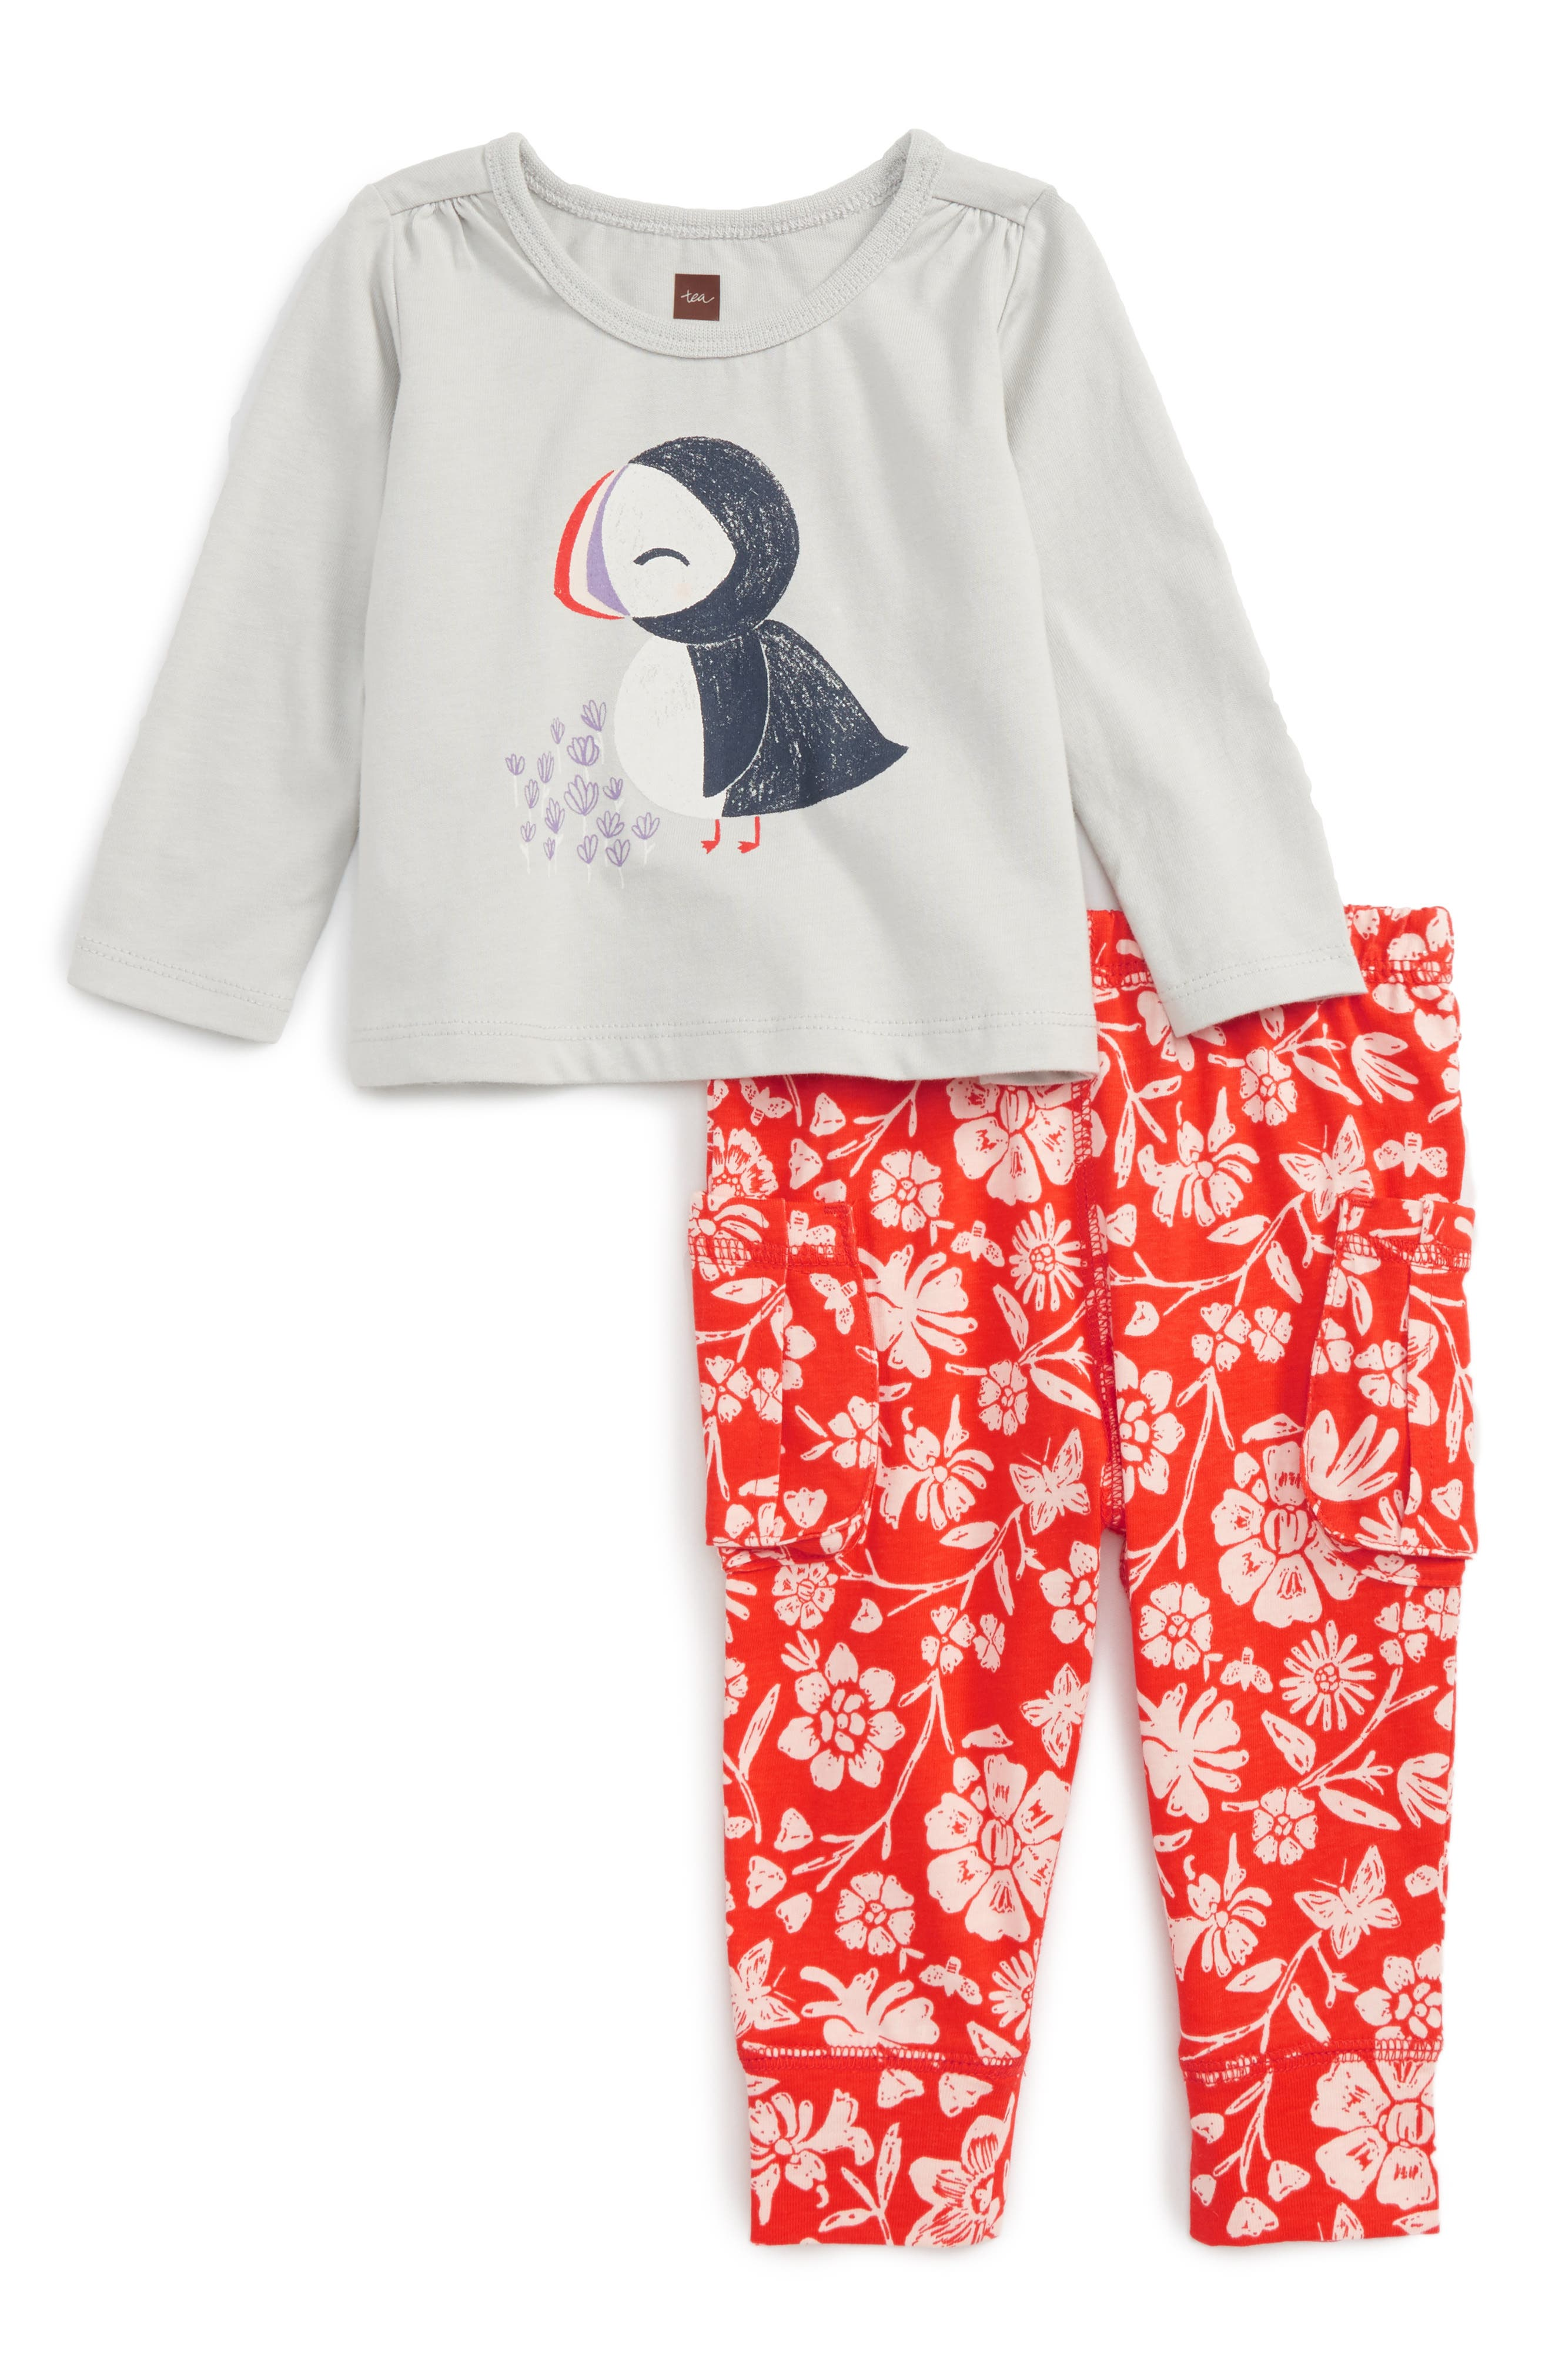 Tea Collection Puffin Graphic Top & Print Leggings Set (Baby Girls)